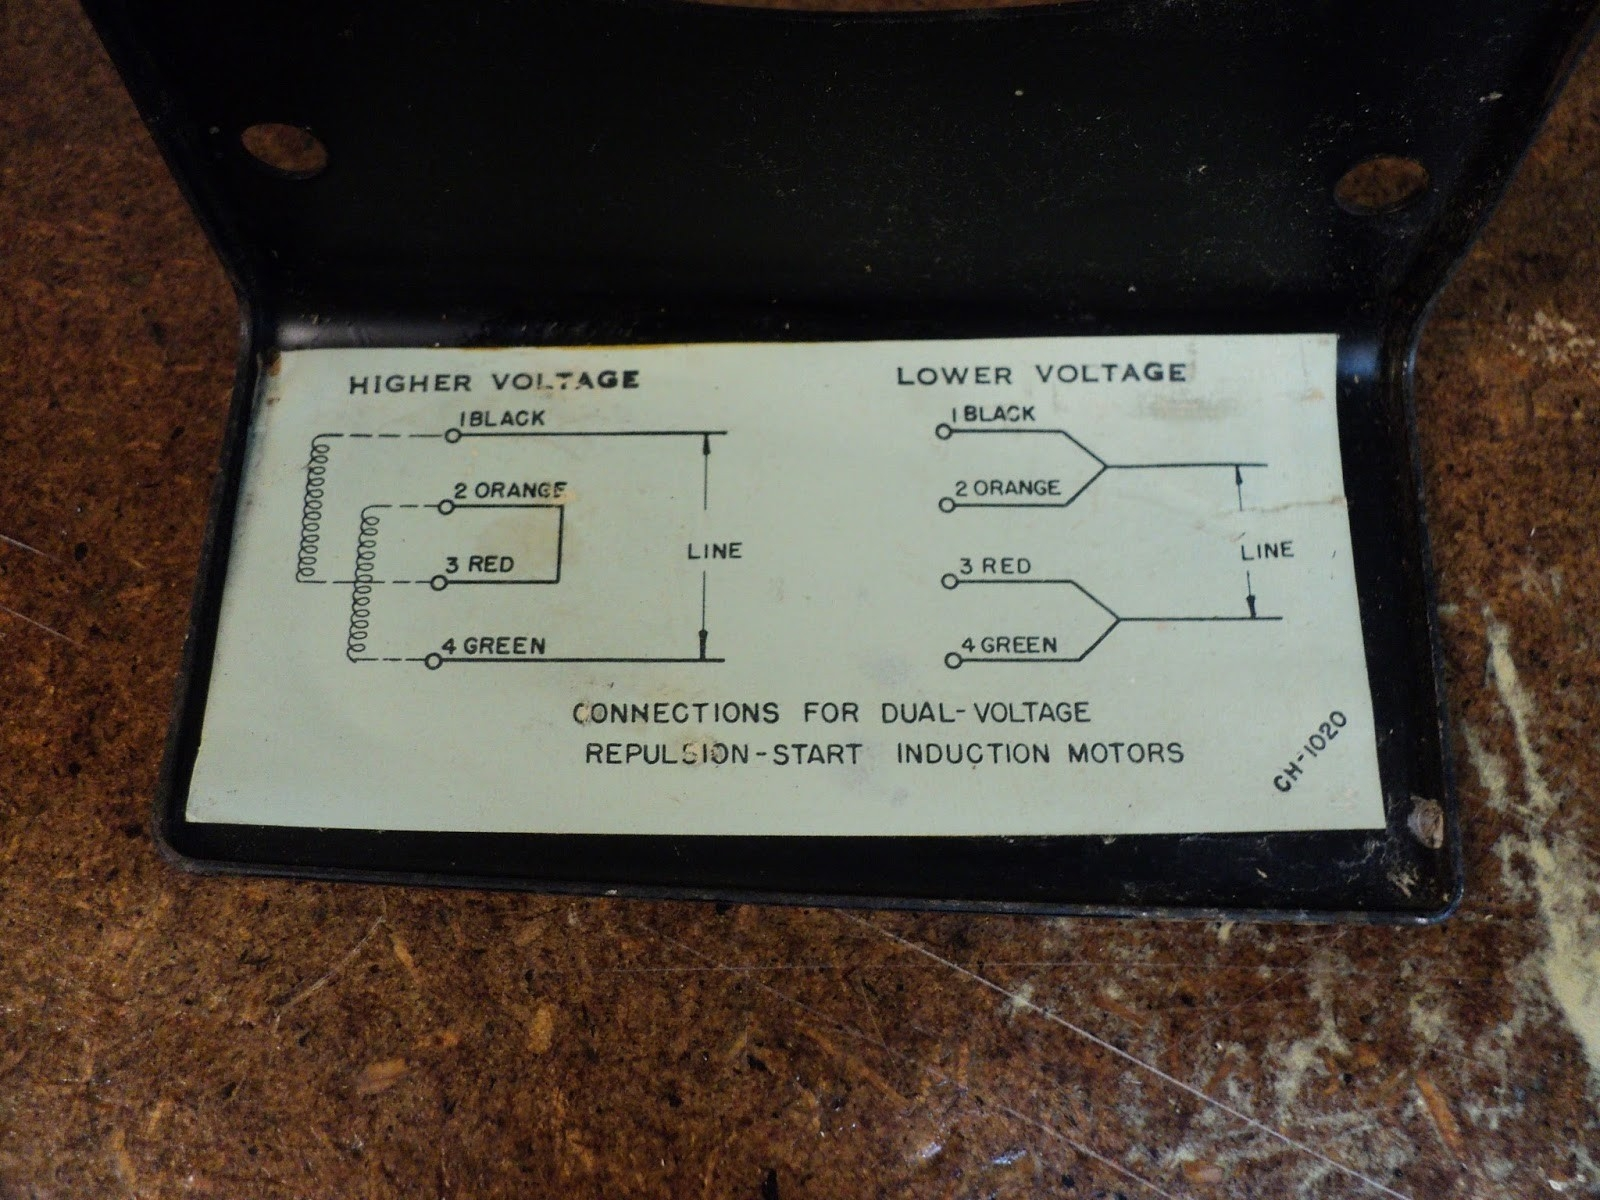 hight resolution of wagner electric motor wiring diagram wagner electric motor wiring diagram marathon 2hp electric motor wiring